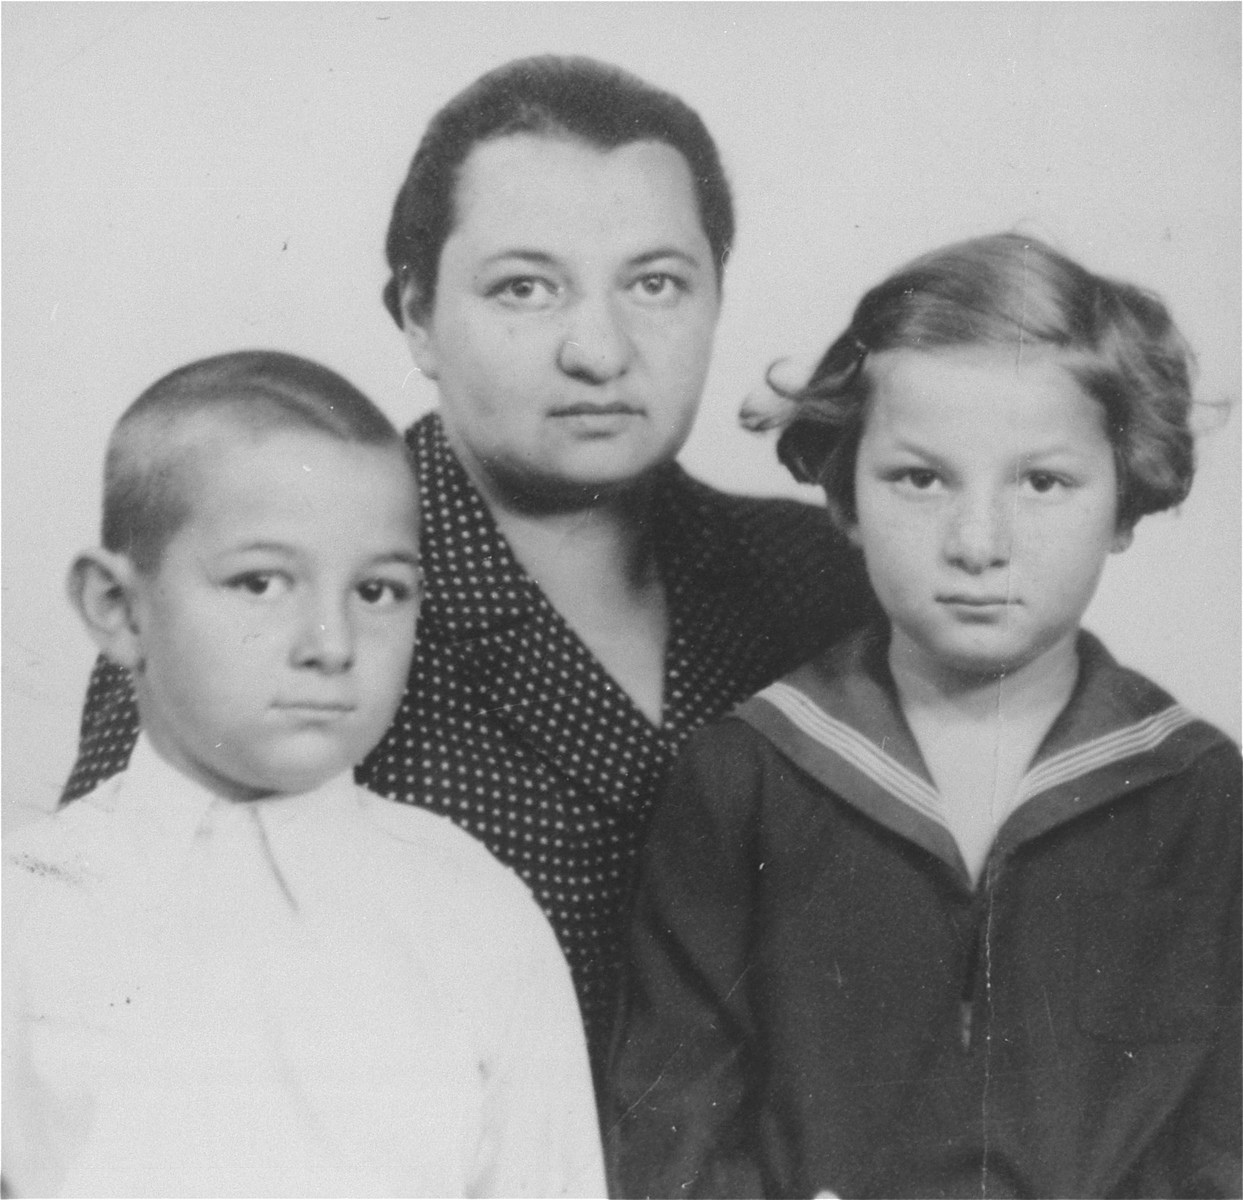 Passport photo of the donor, Magda Herzog Muller and her two children, Heinrich and Alice.    The photograph was taken in London while they awaited a ship to take them to Canada.